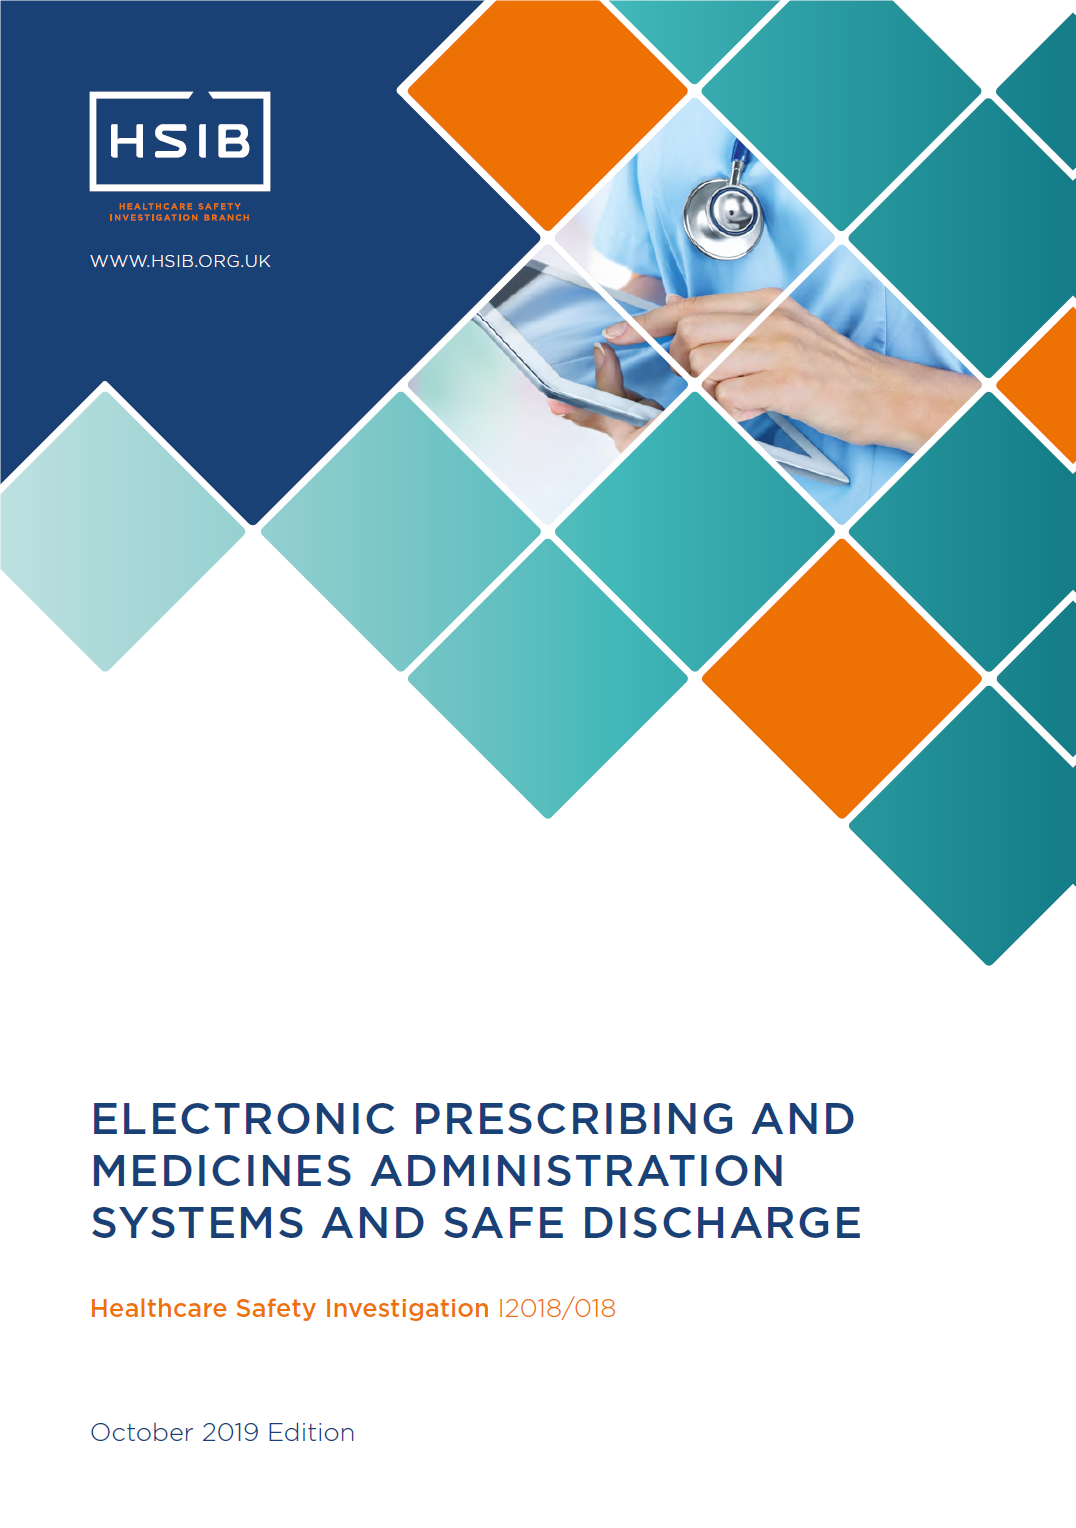 Electronic Prescribing and Medicines Admin Systems and Safe Discharge